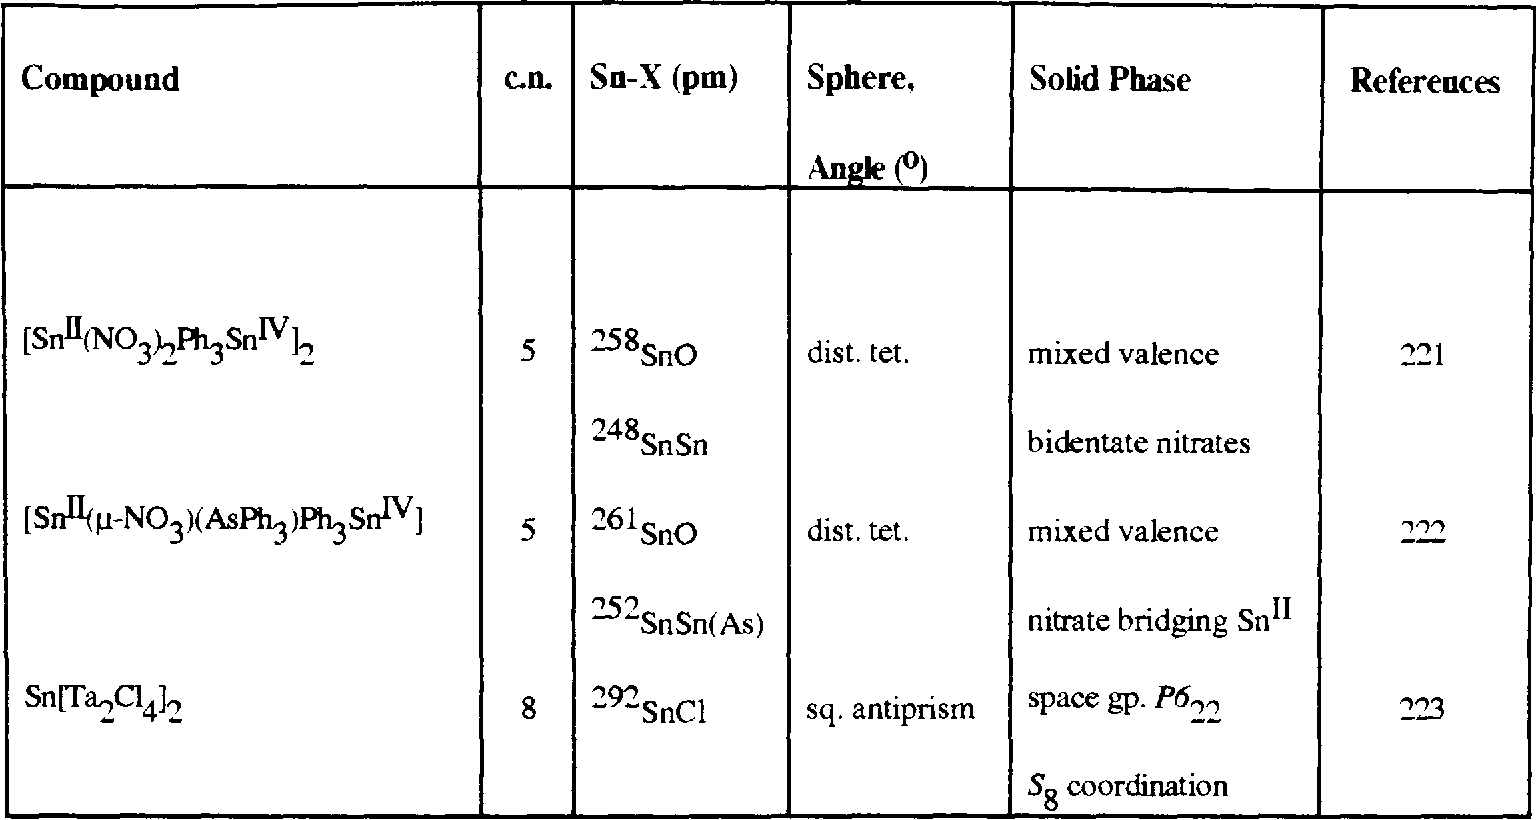 table 1.16